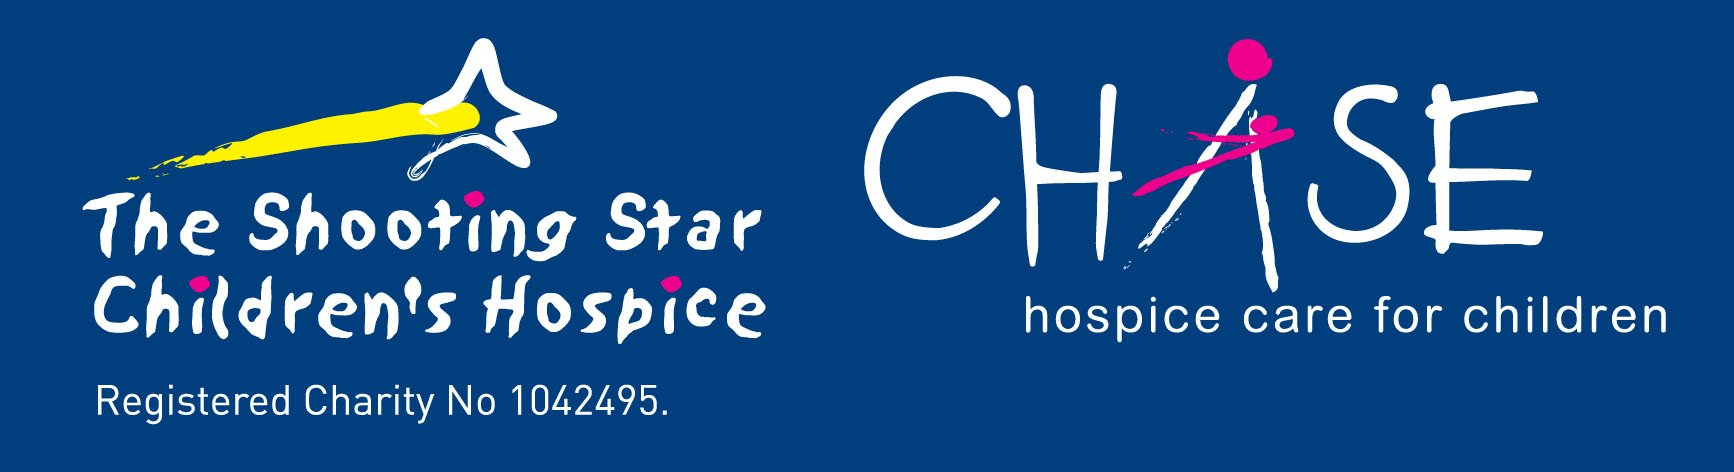 Shooting Star CHASE is your local children's hospice charity caring for over 600 families living in western London, Surrey and West Sussex.